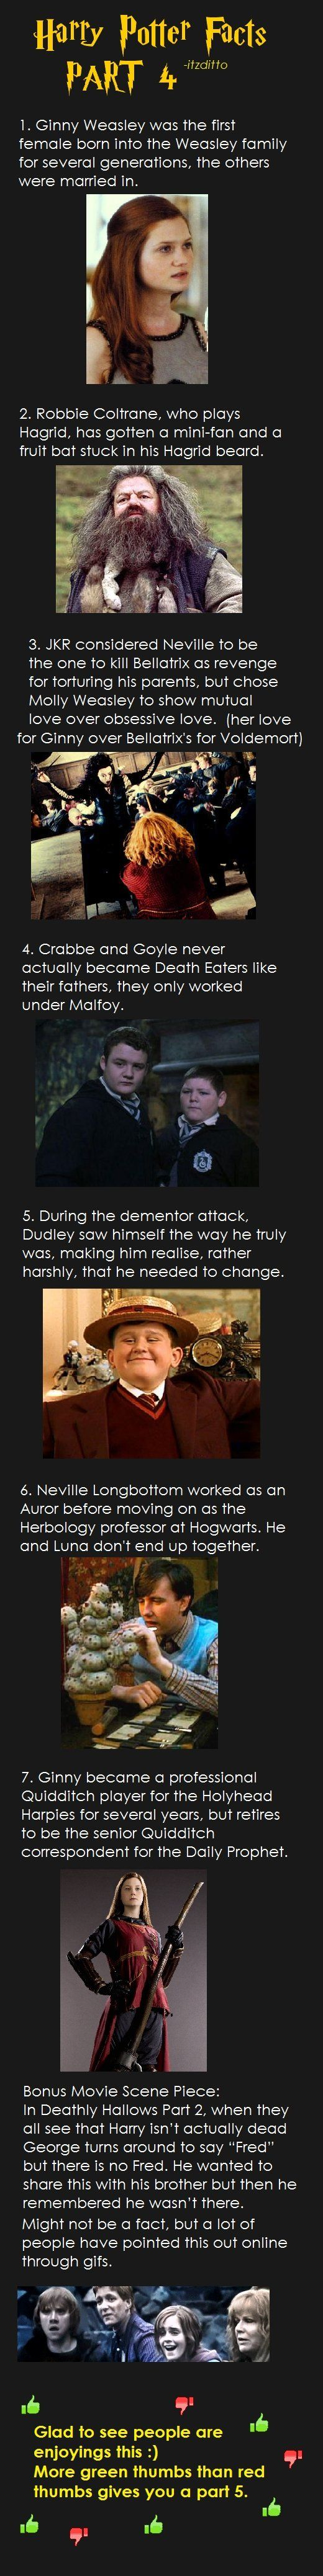 More potter facts